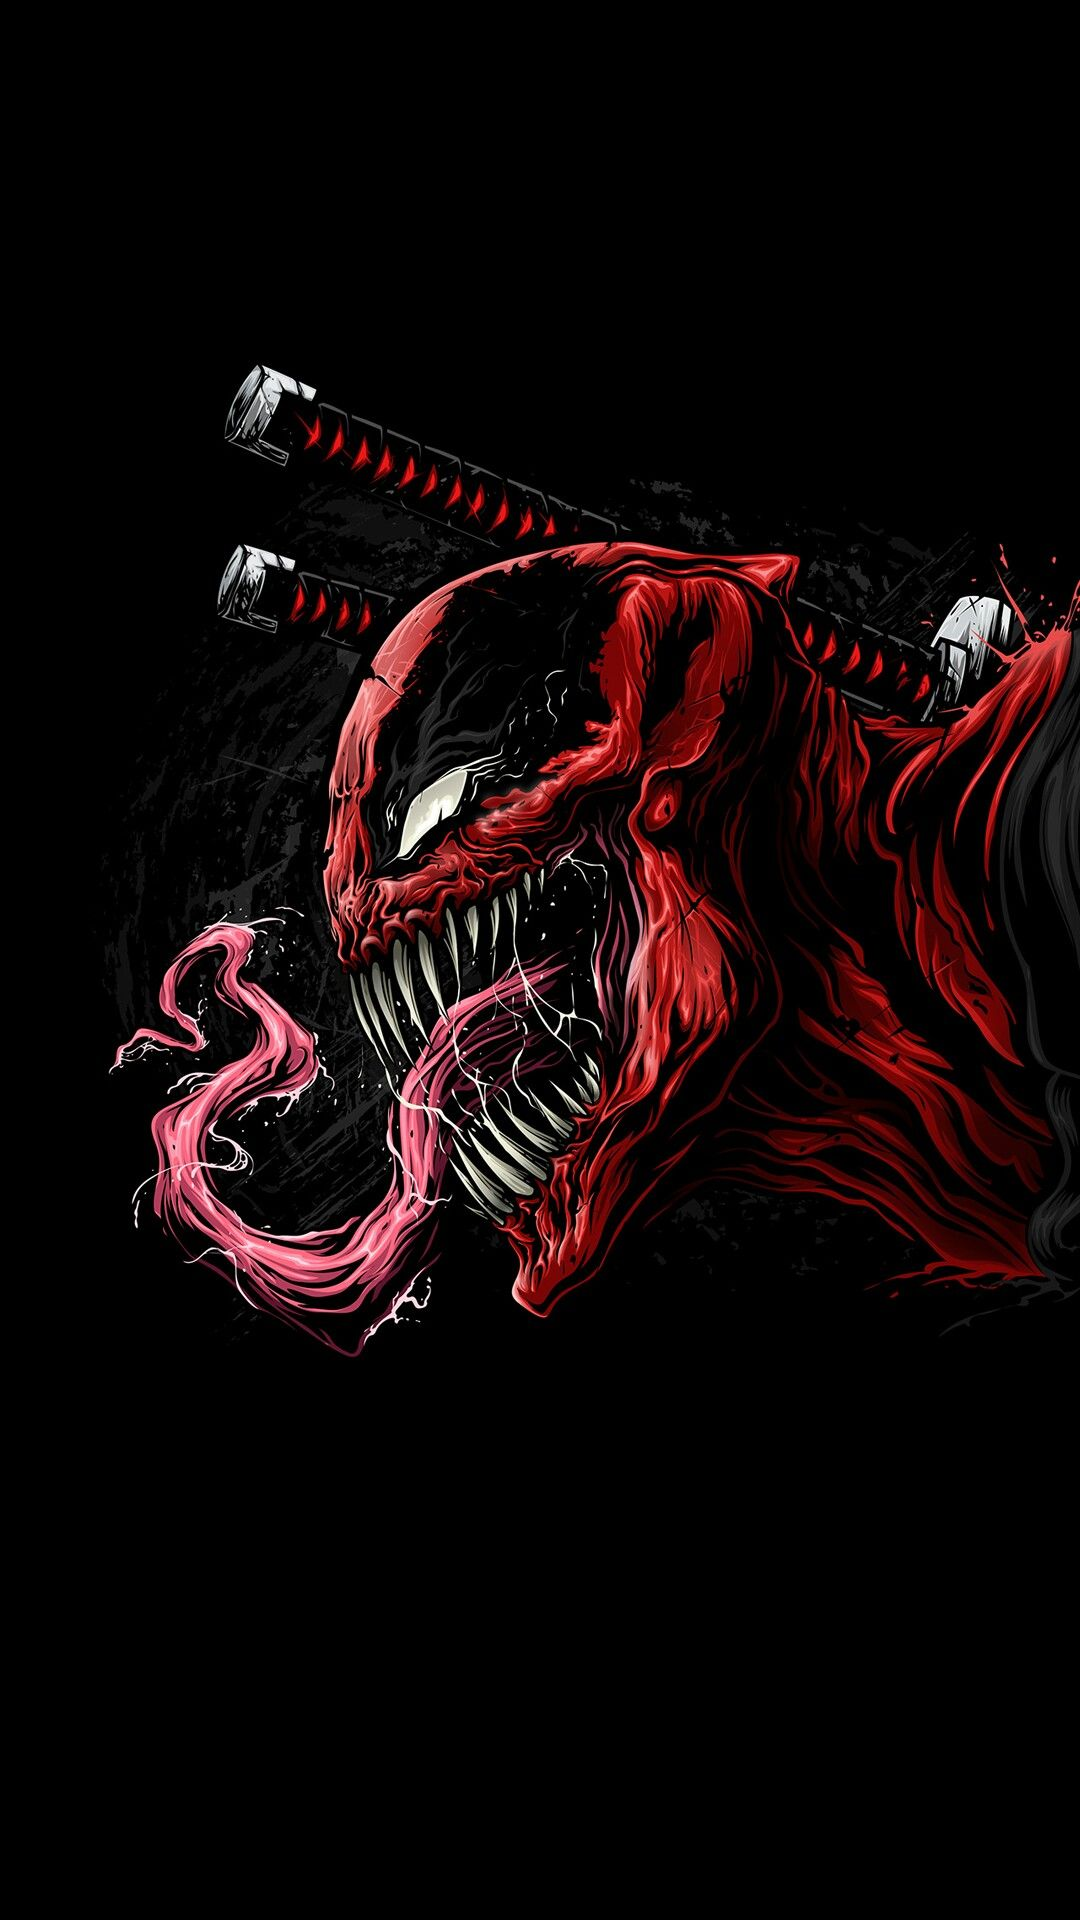 Carnage Deadpool Wallpaper Marvel Comics Wallpaper Deadpool Hd Wallpaper